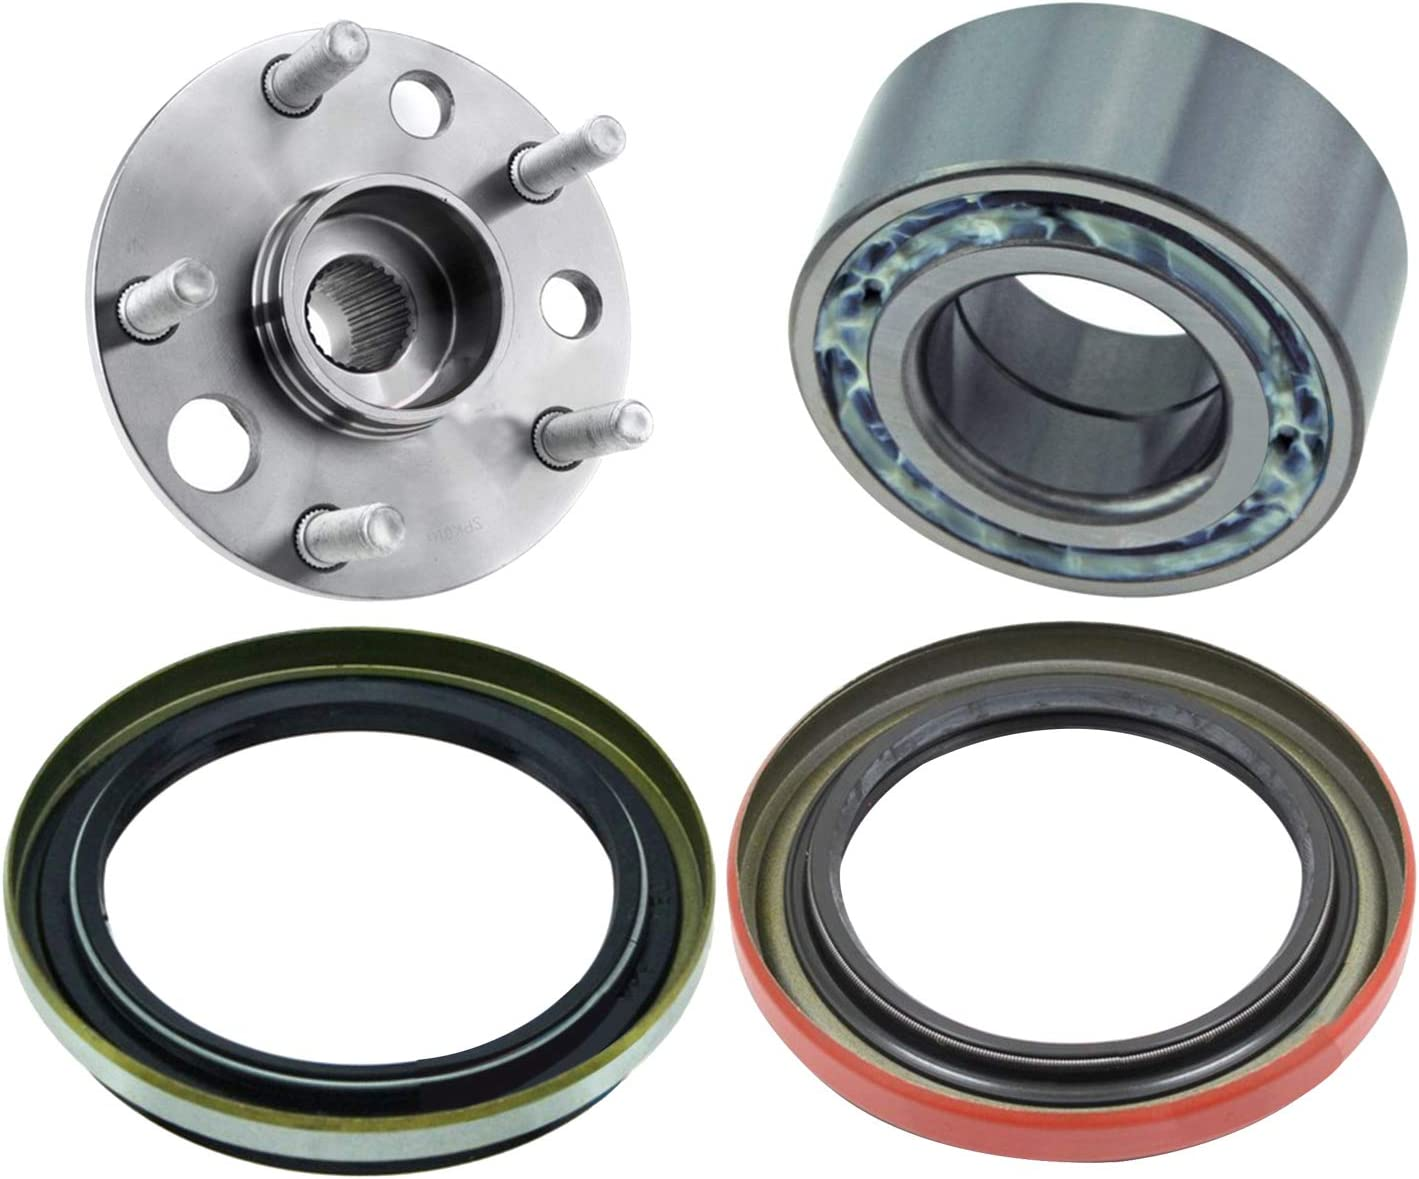 4Pcs Rear Wheel Hub Bearing Kit Highland Assembly Toyota for fit Max 44% OFF Recommended